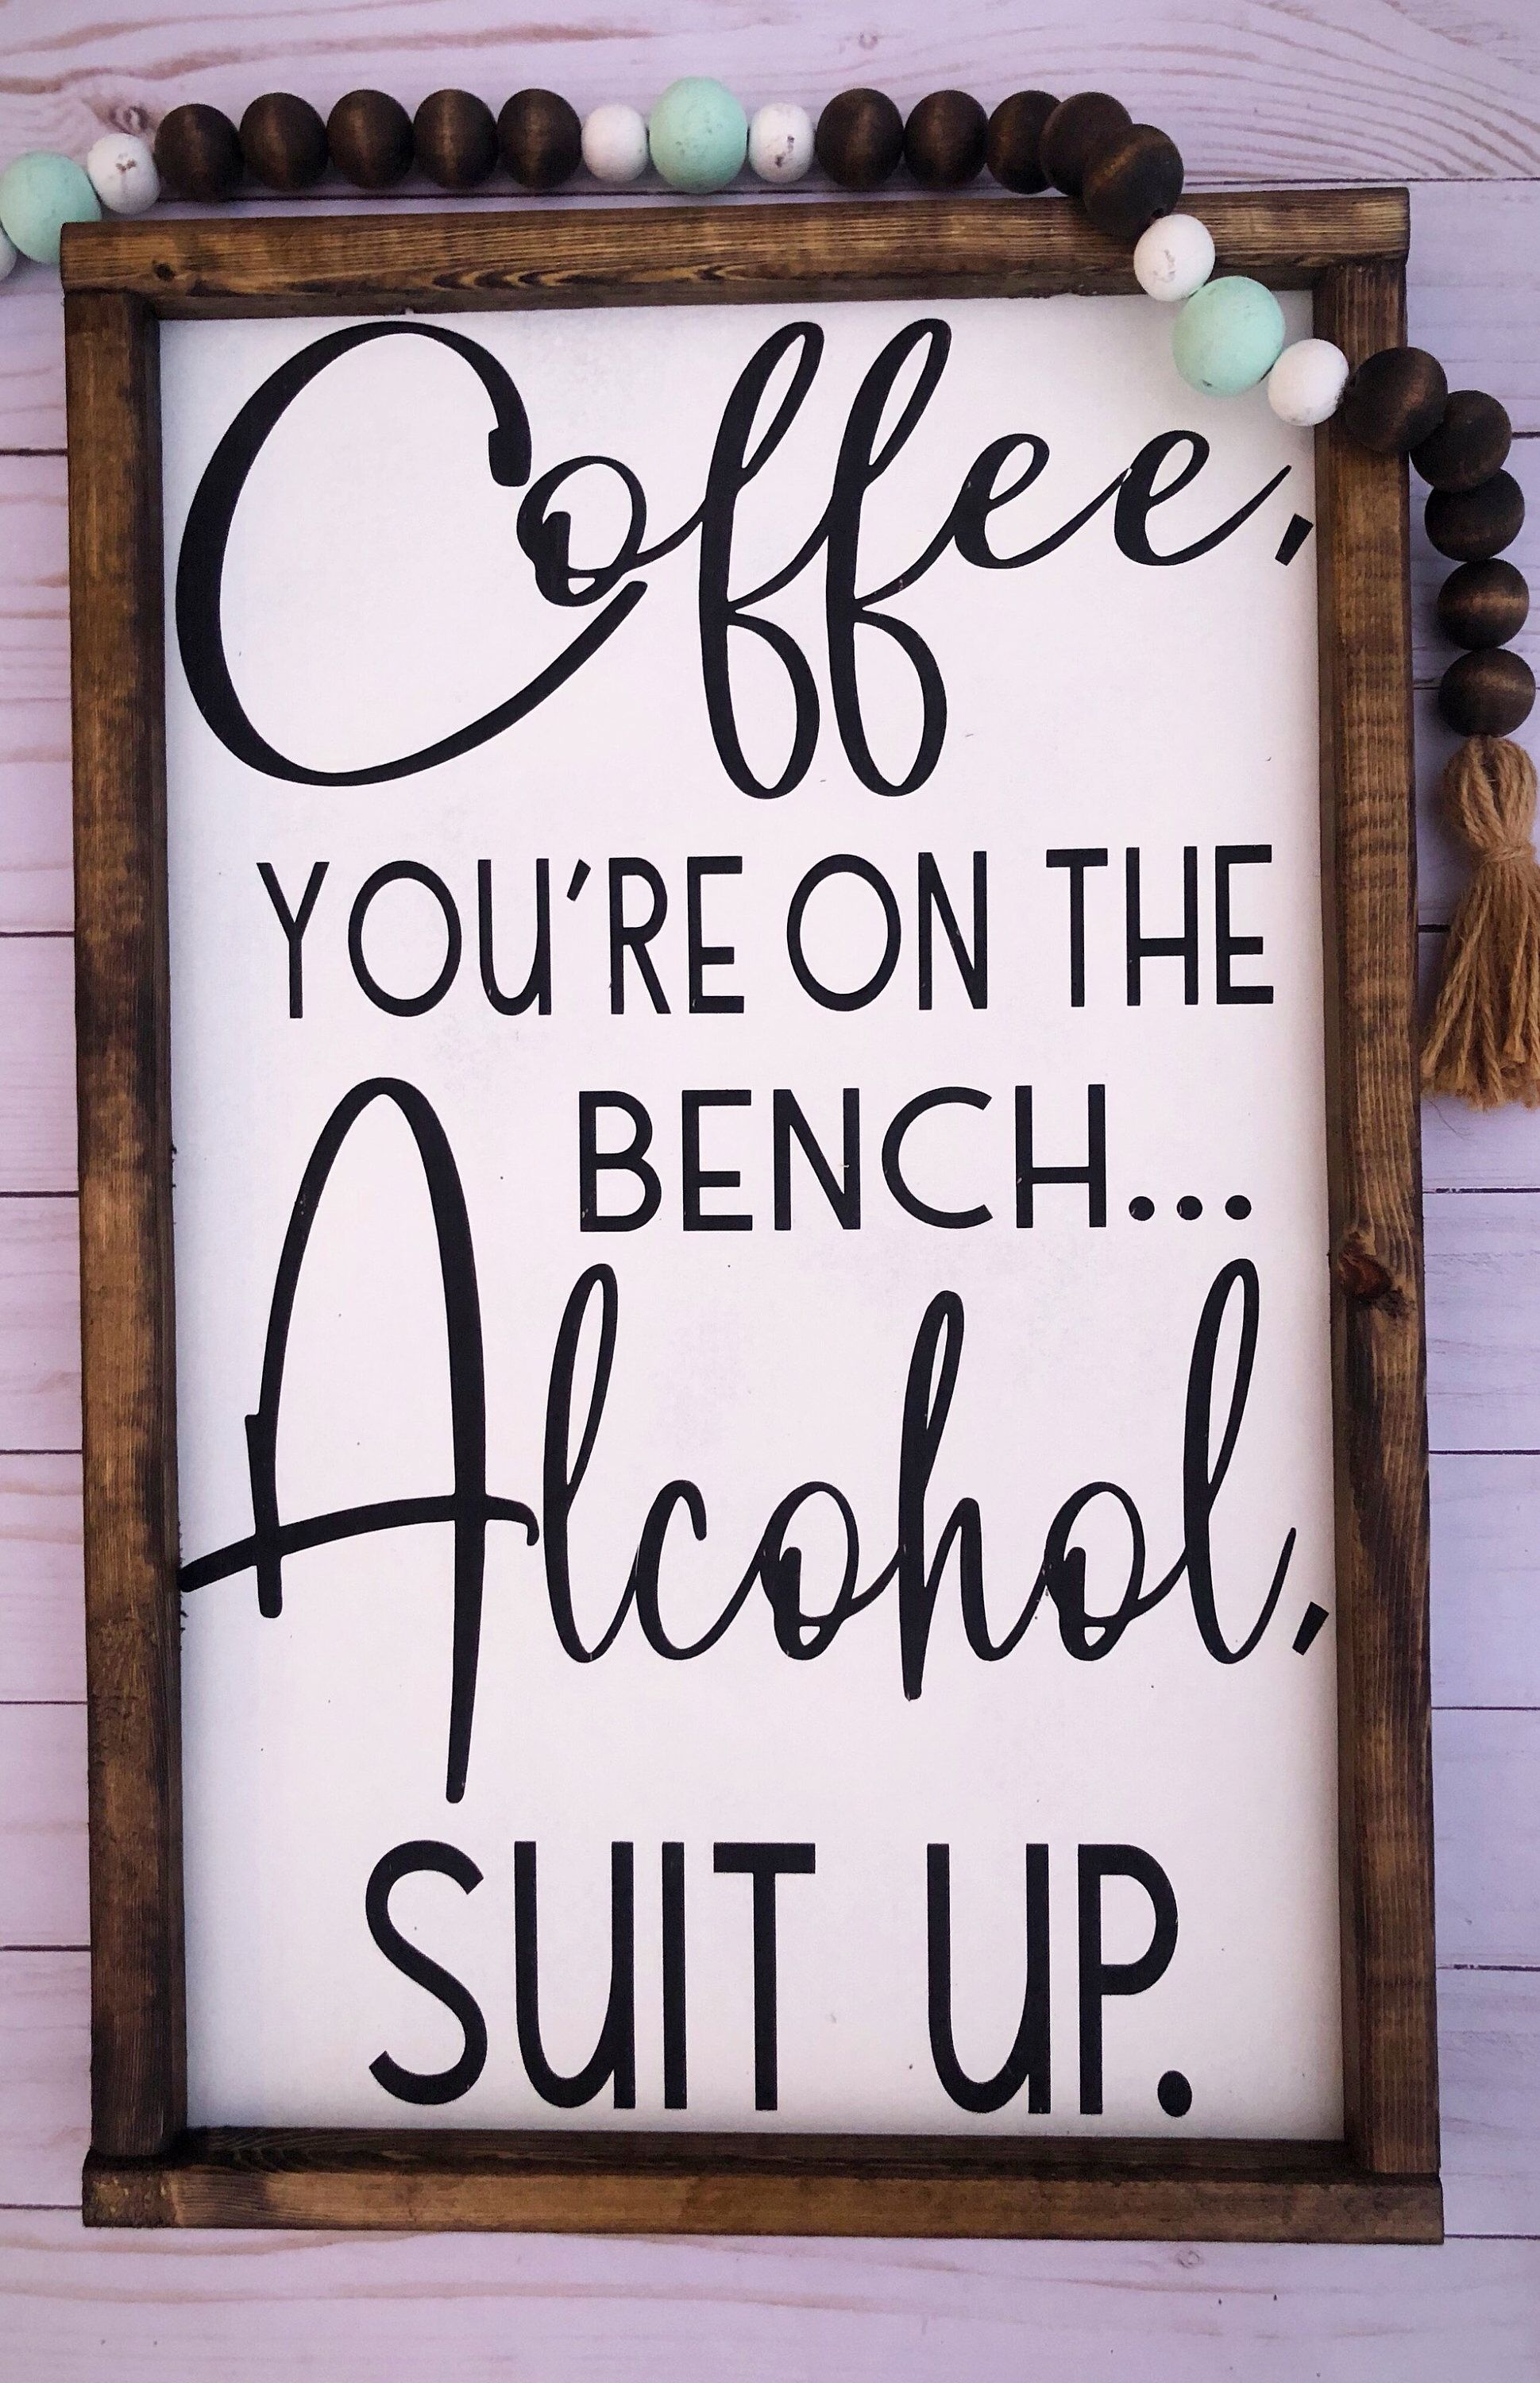 Signs With Quotes Farmhouse Decor Alcohol Coffee Farmhouse Signs Signs For Home Gift For Him Man Cave Decor Fathers Day Gift Home Decor Signs Unique Home Decor Diy Wood Signs